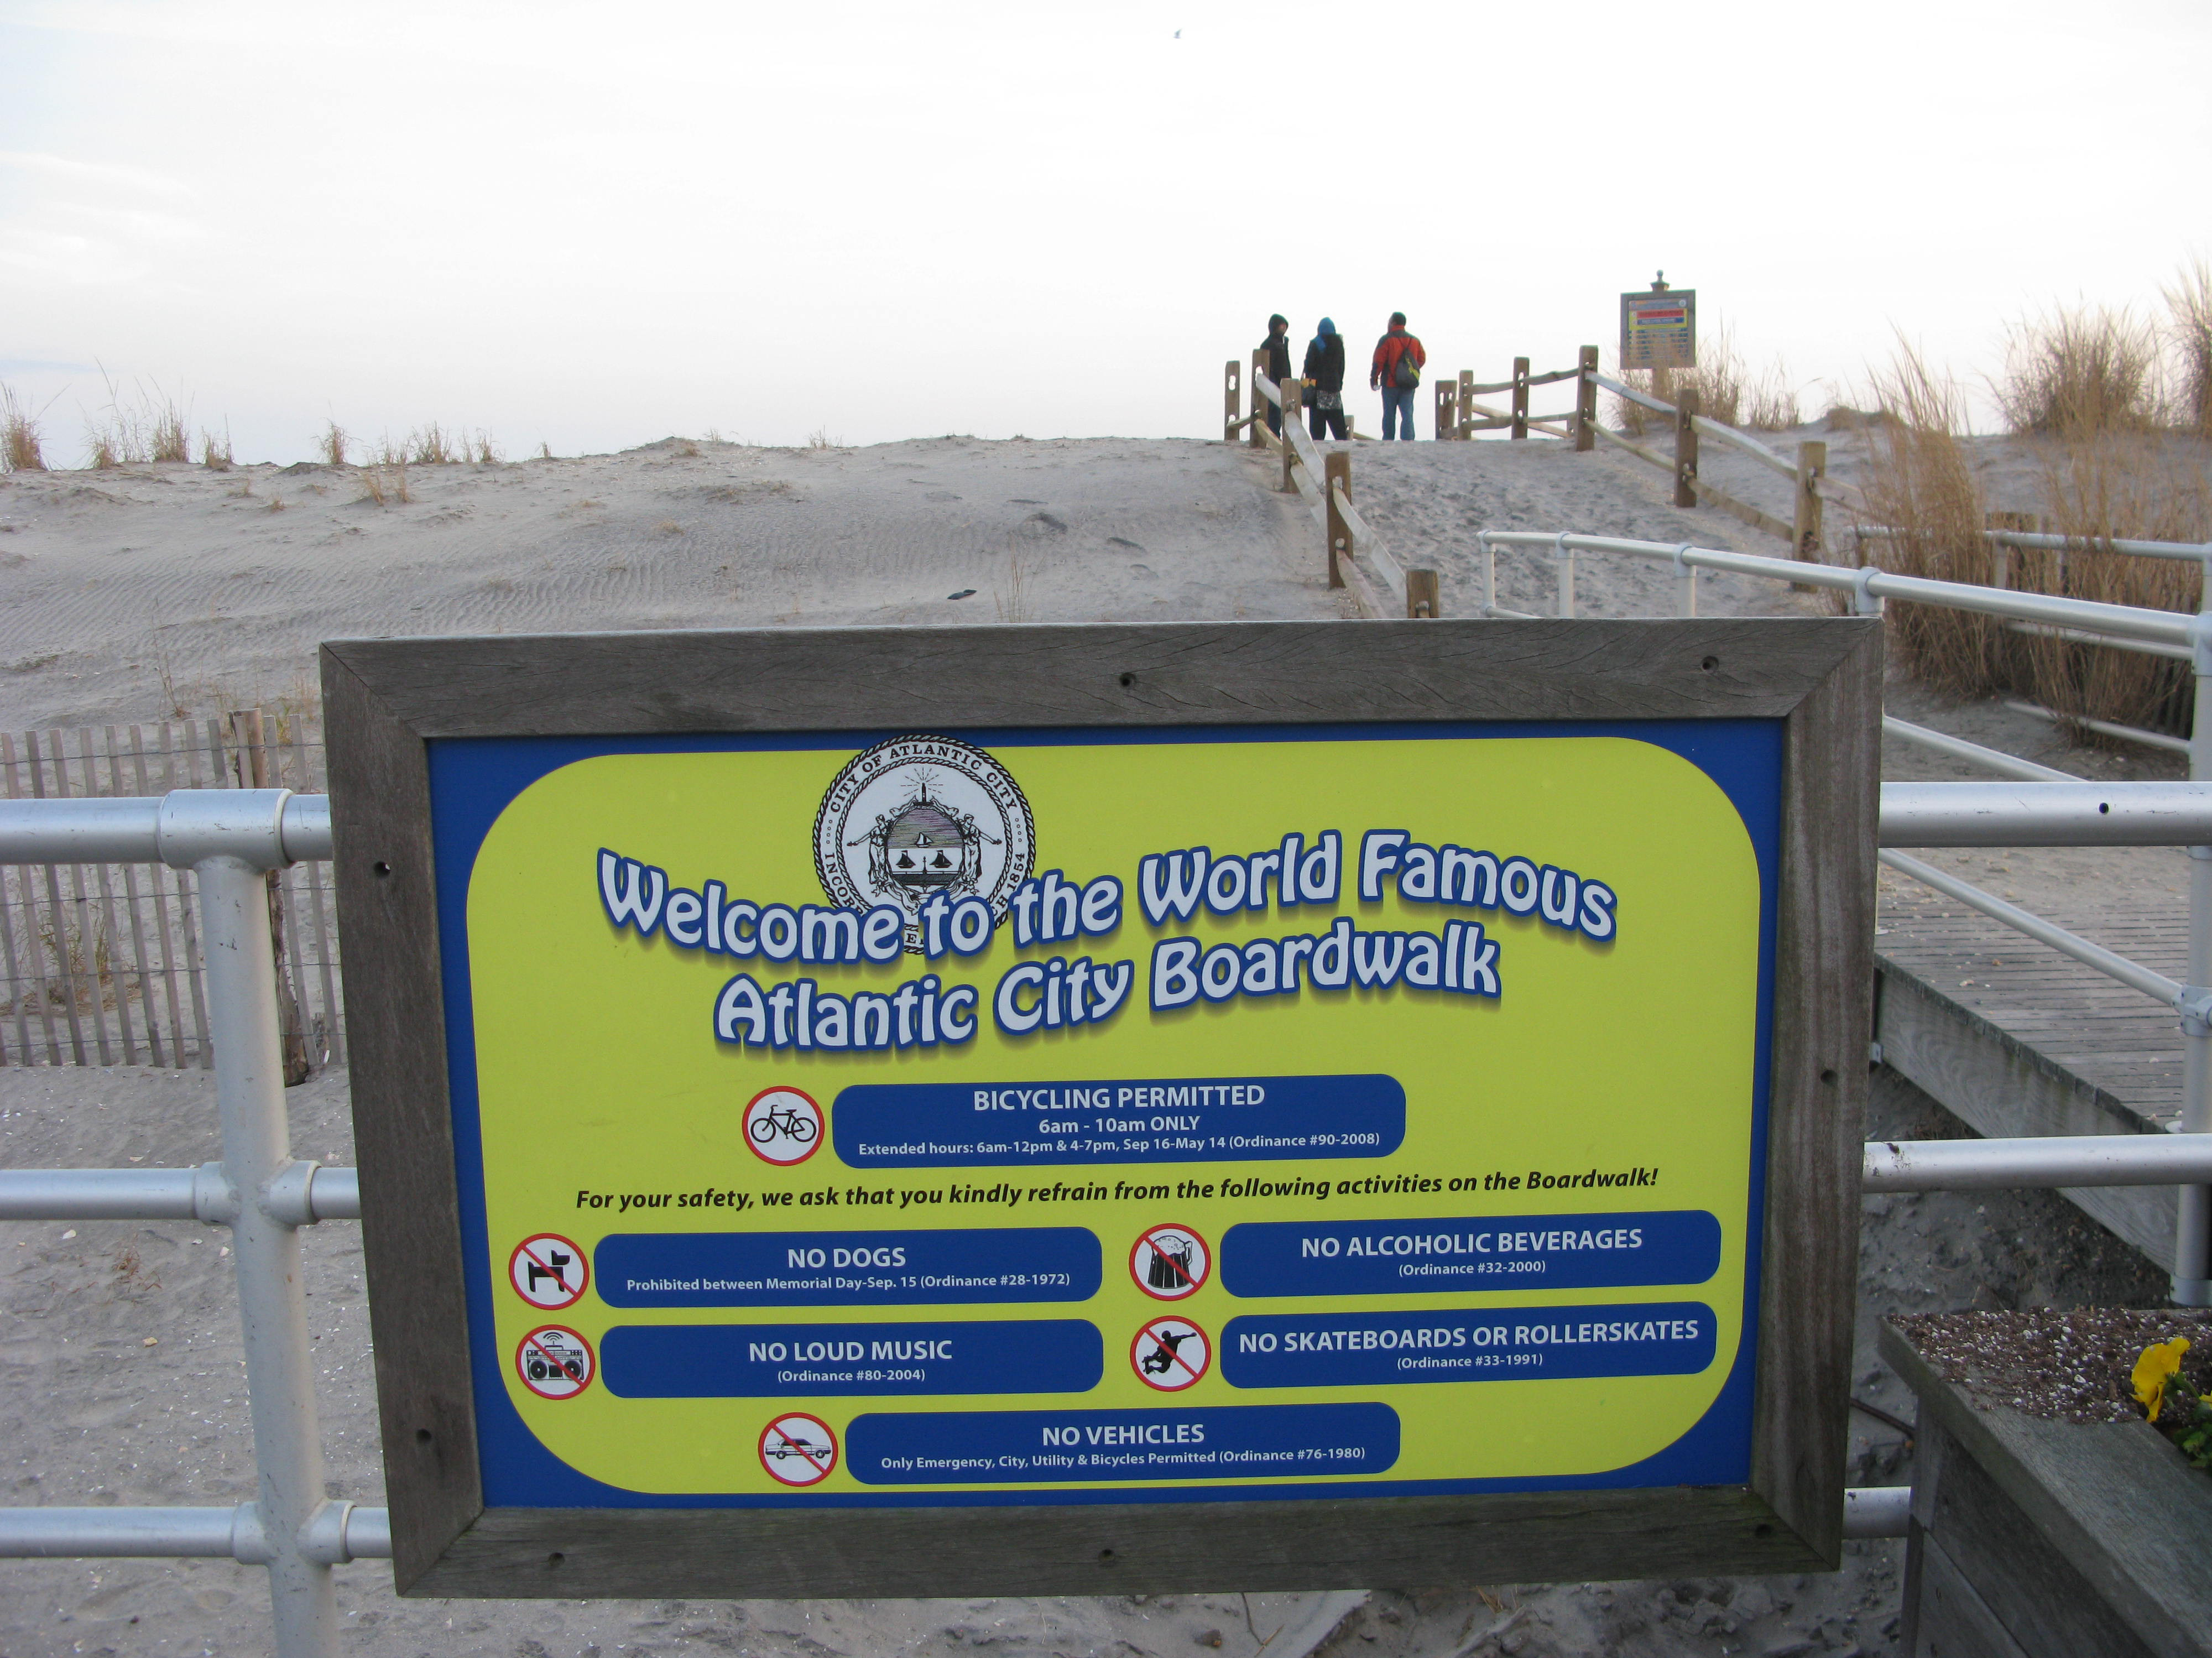 Rumors of the demise of Atlantic City's boardwalk were greatly exaggerated -- only a small part was damaged. Now city and tourism officials are trying to draw people back.